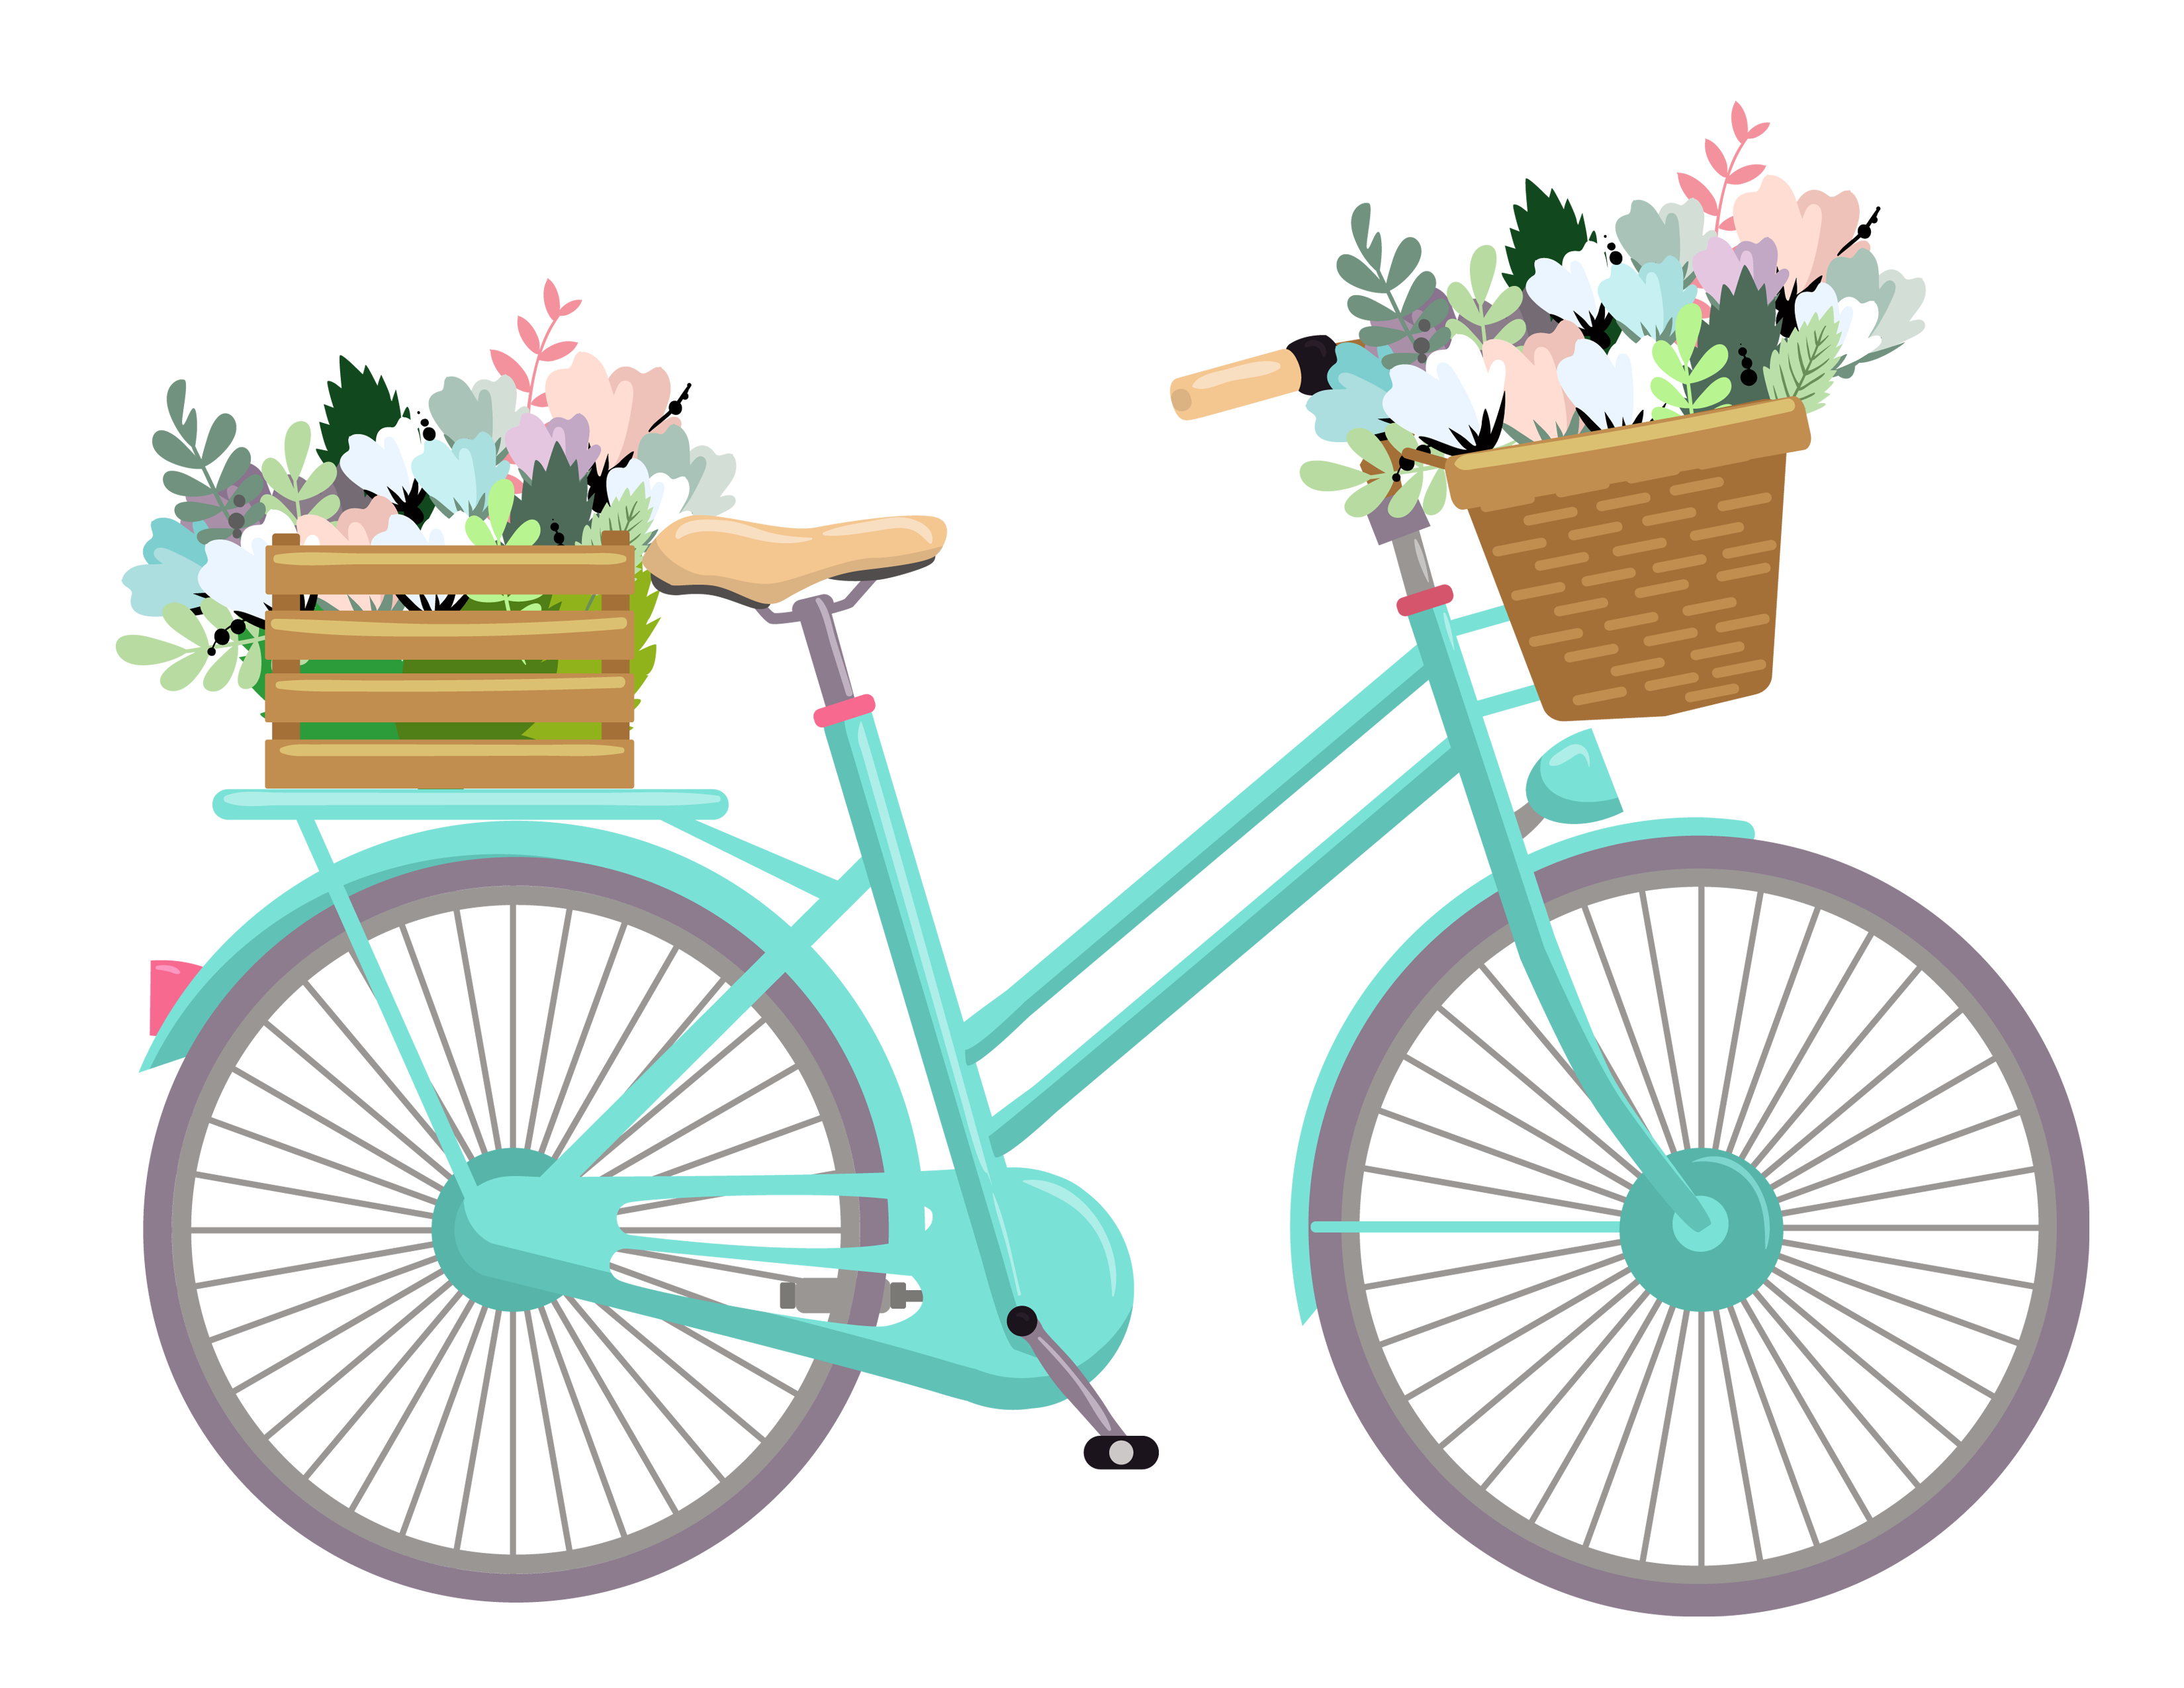 Shaow clipart bike 1 Pretty Bicycle Things For